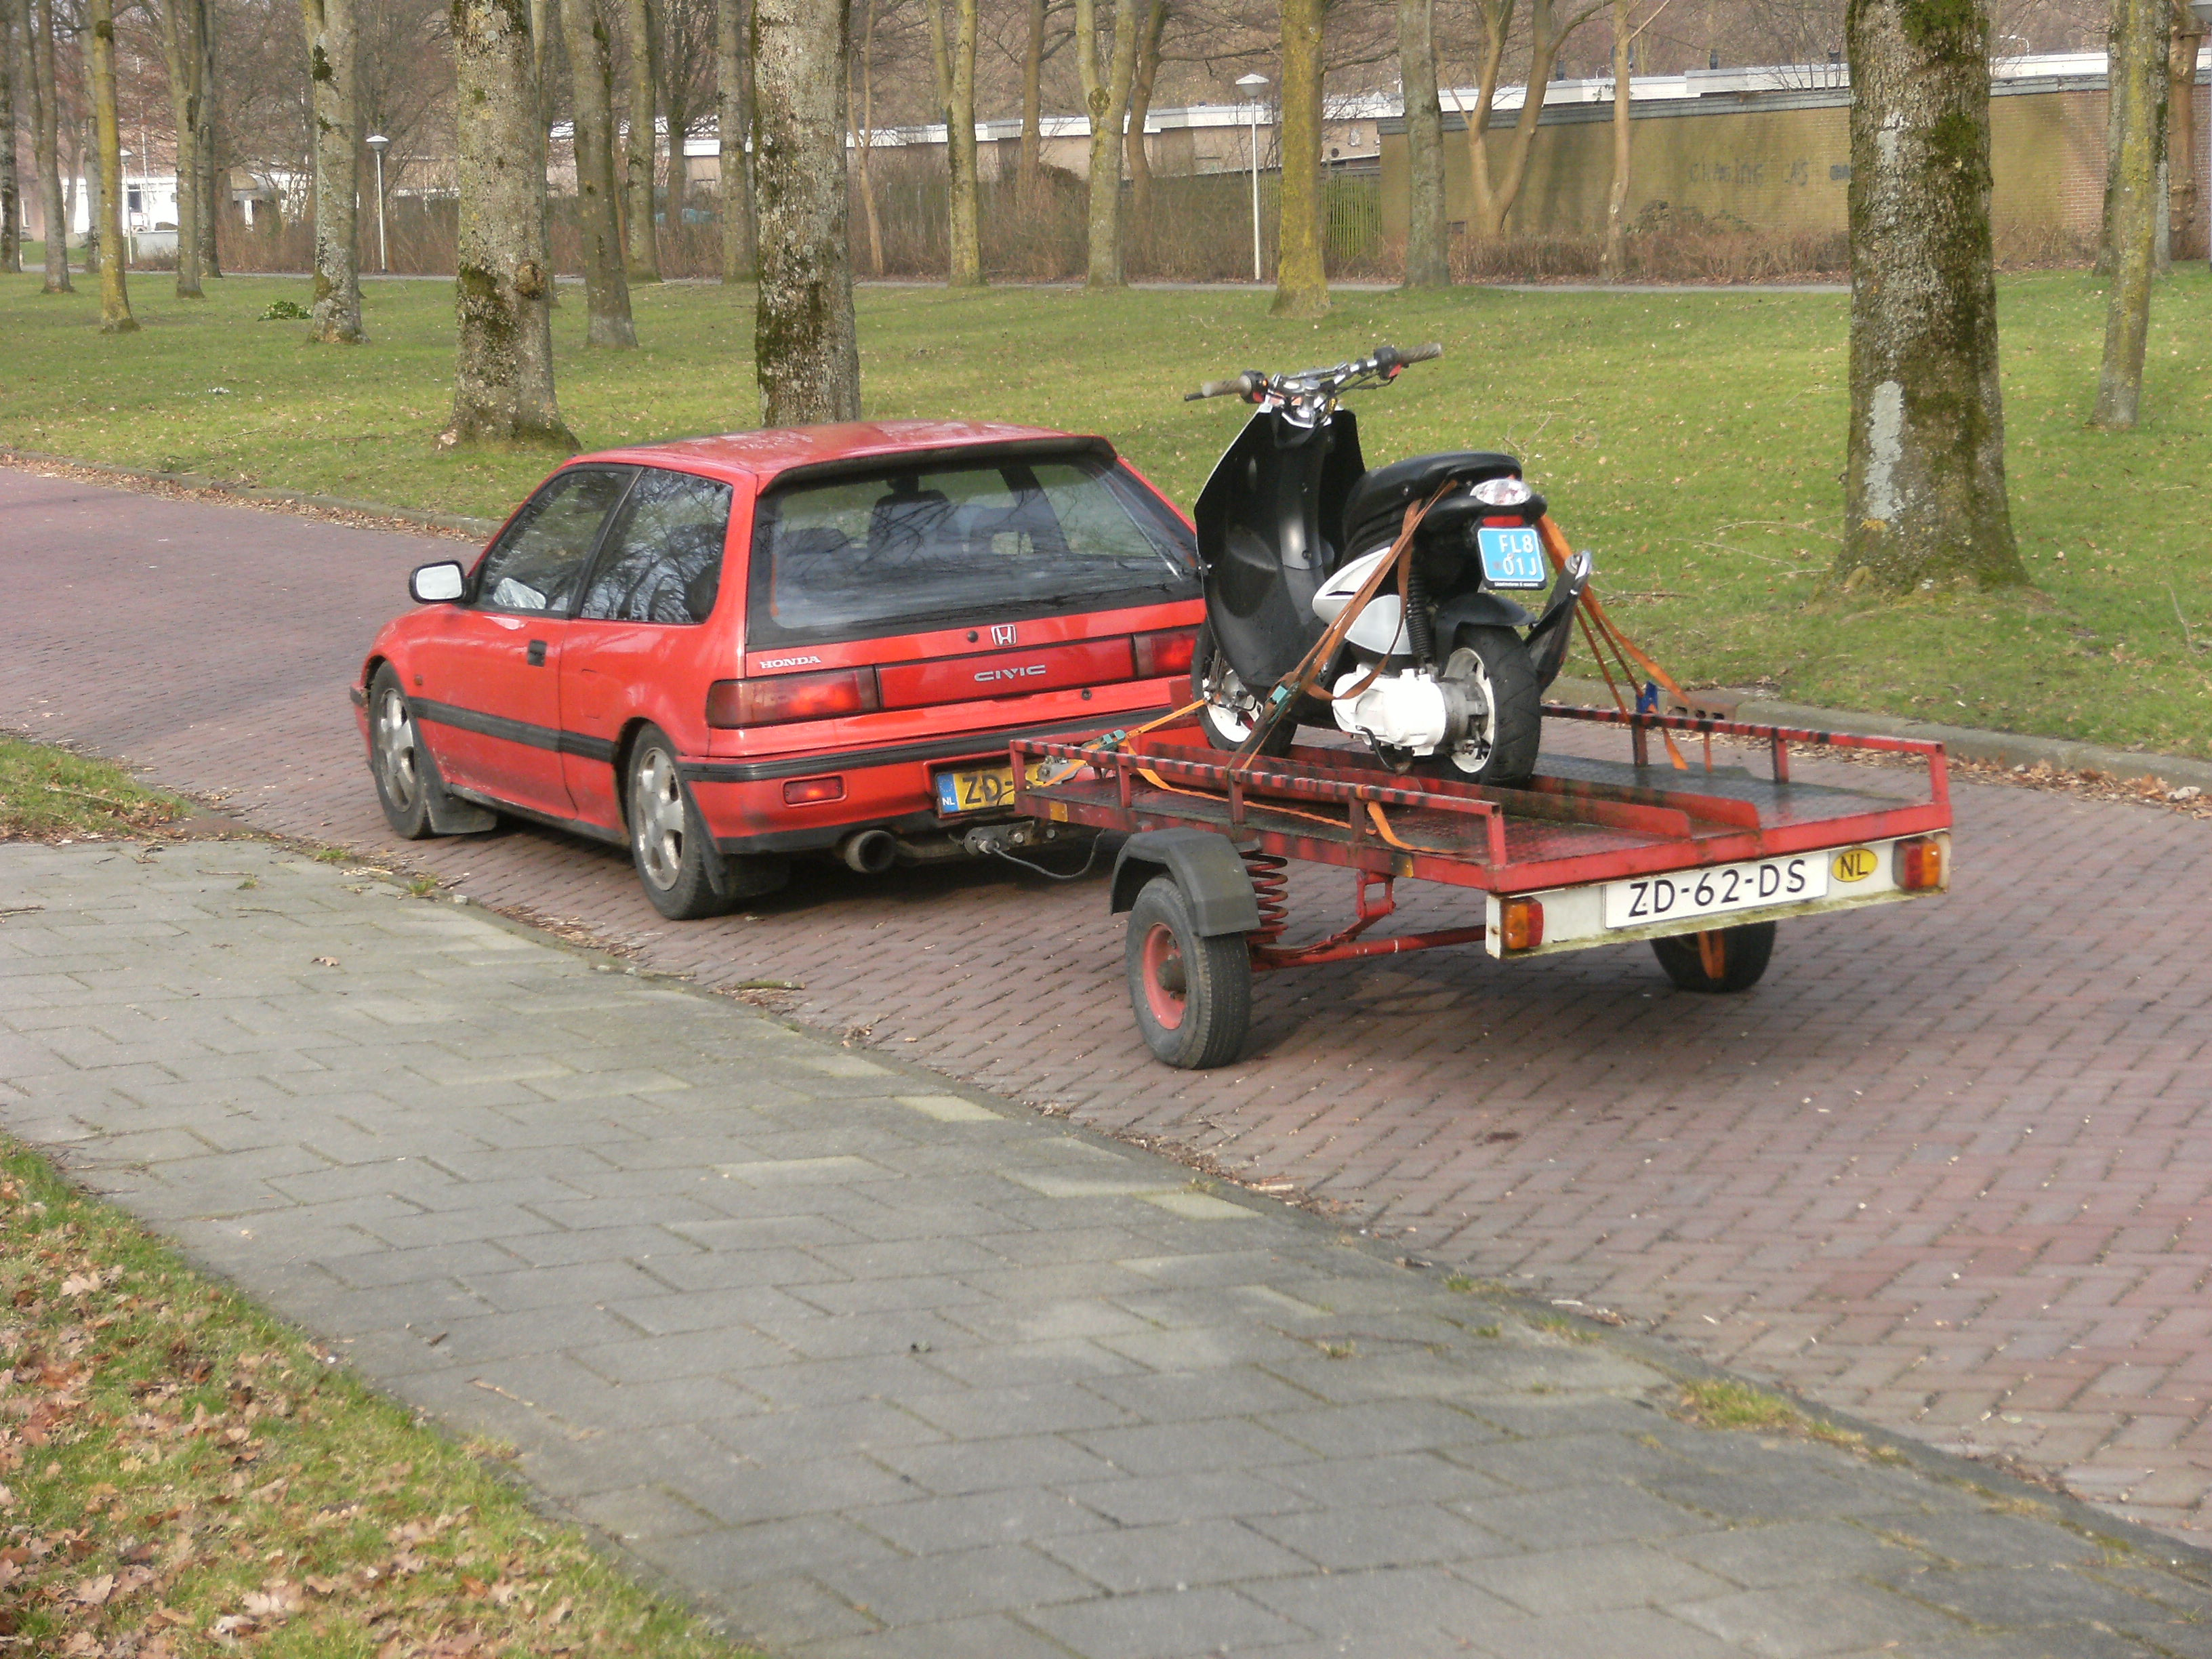 File:Car and trailer with motorbike Nagele.JPG - Wikimedia Commons